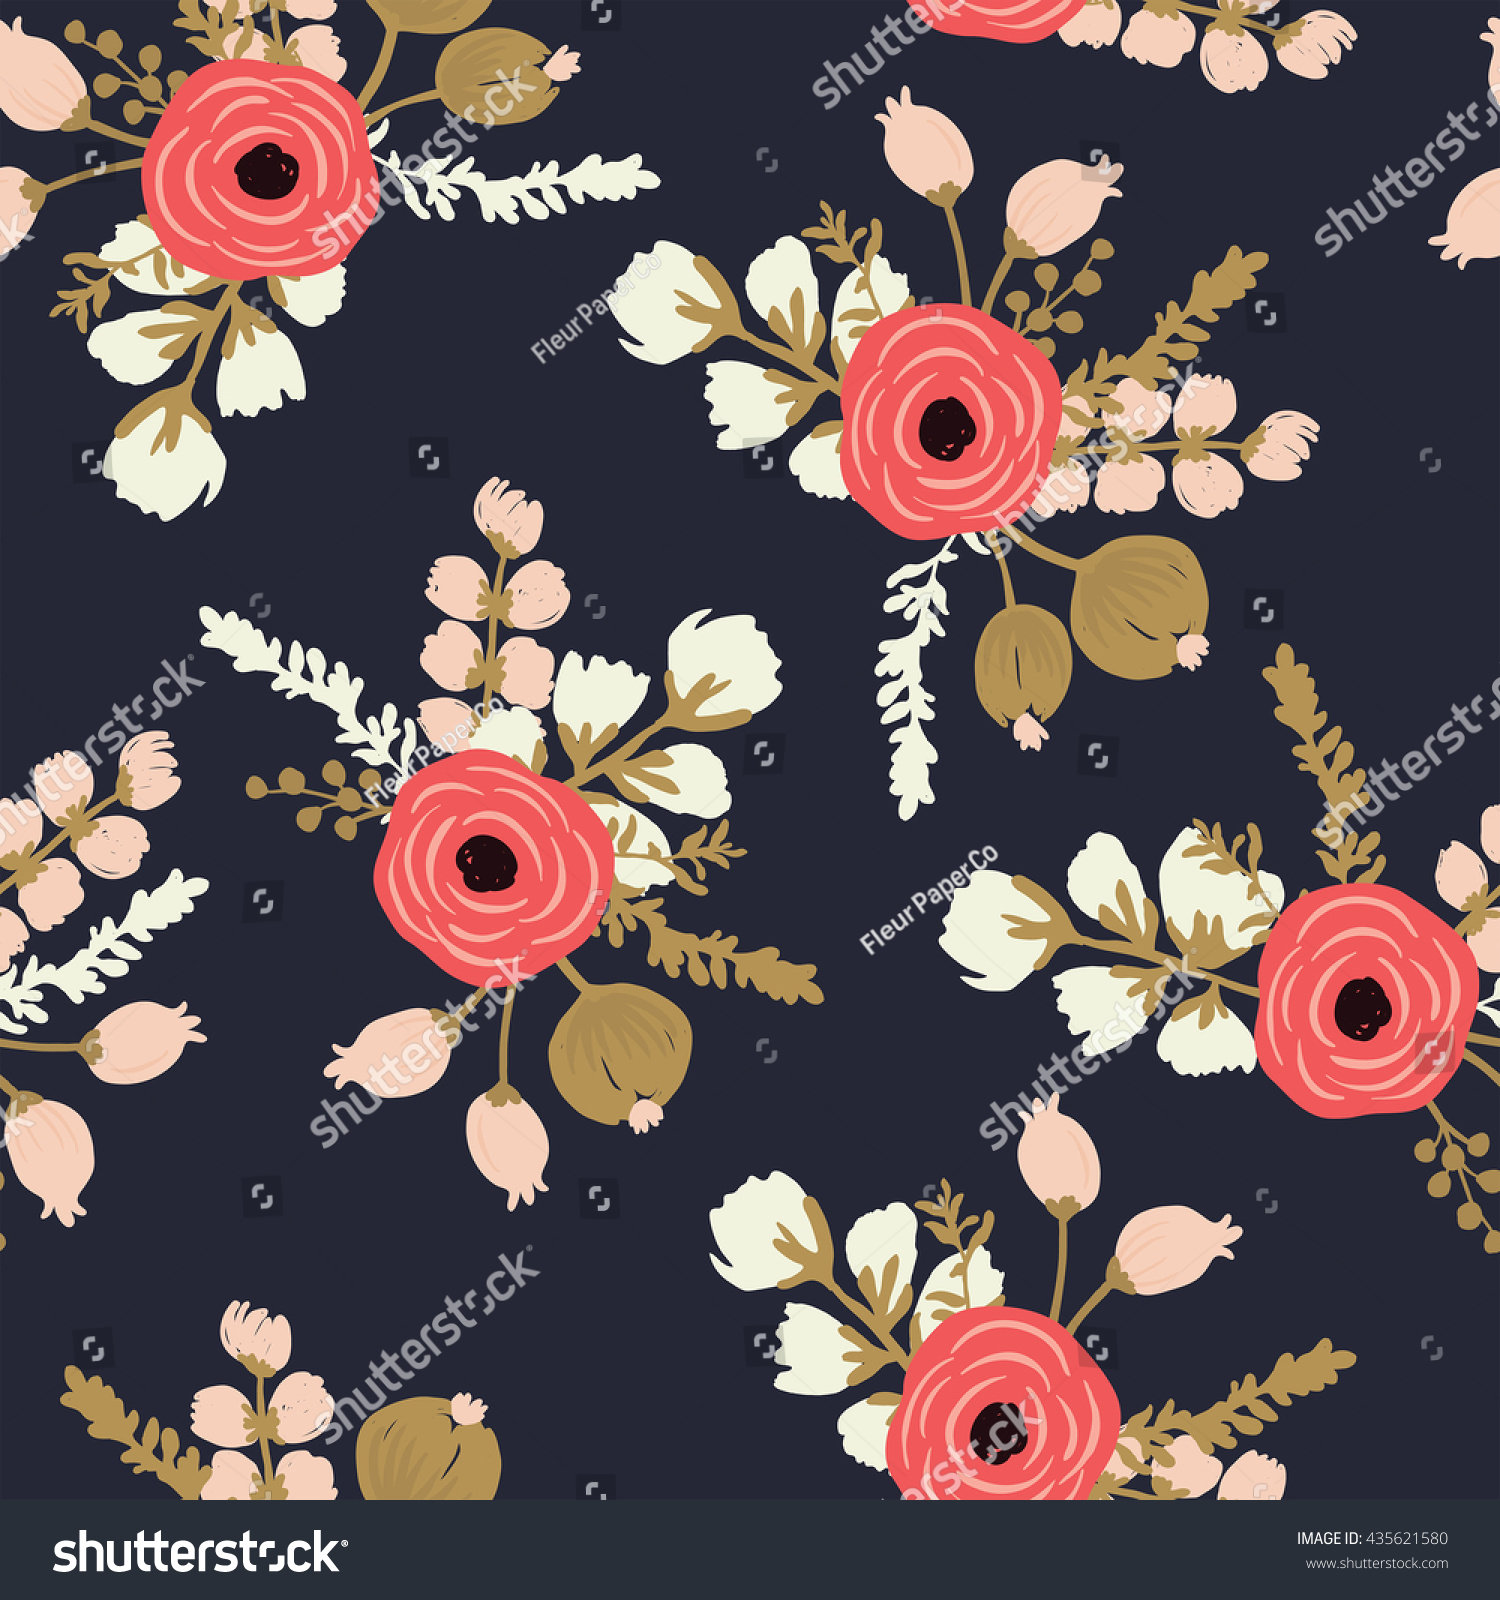 Hand Drawn Rose Seamless Modern Floral Stock Vector Royalty Free